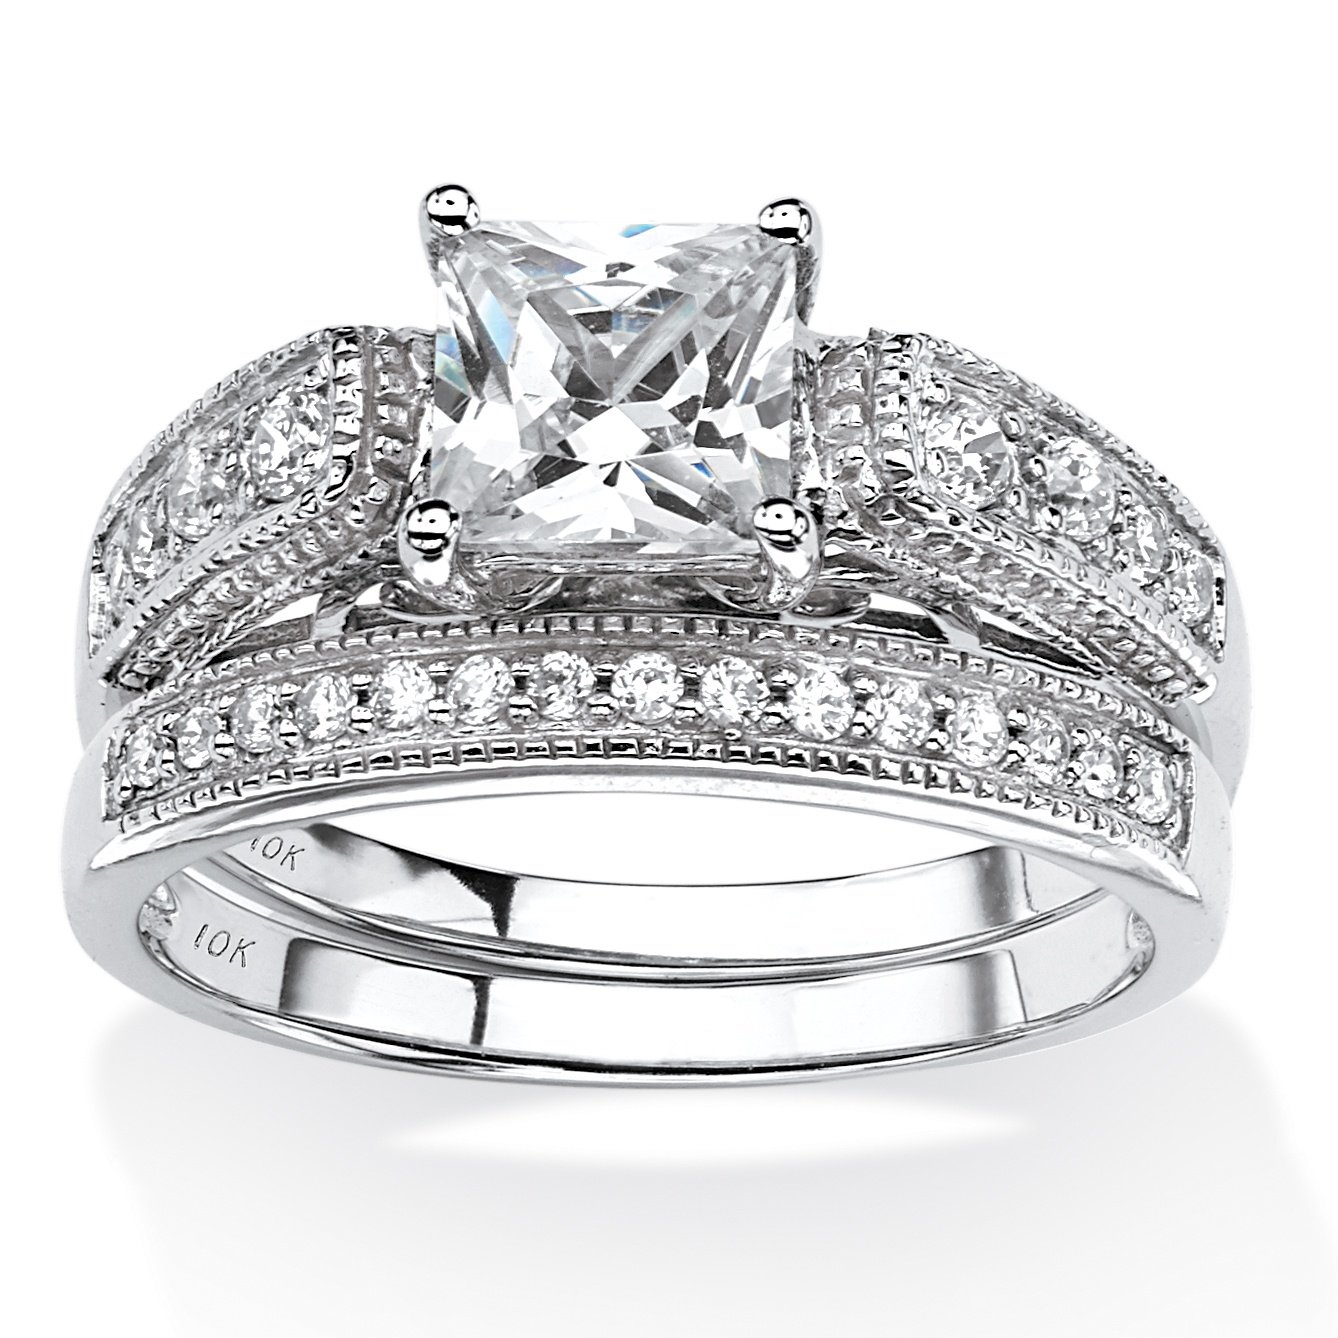 1.50 TCW Princess-Cut Cubic Zirconia Two-Piece Vintage Bridal Set in 10k White Gold